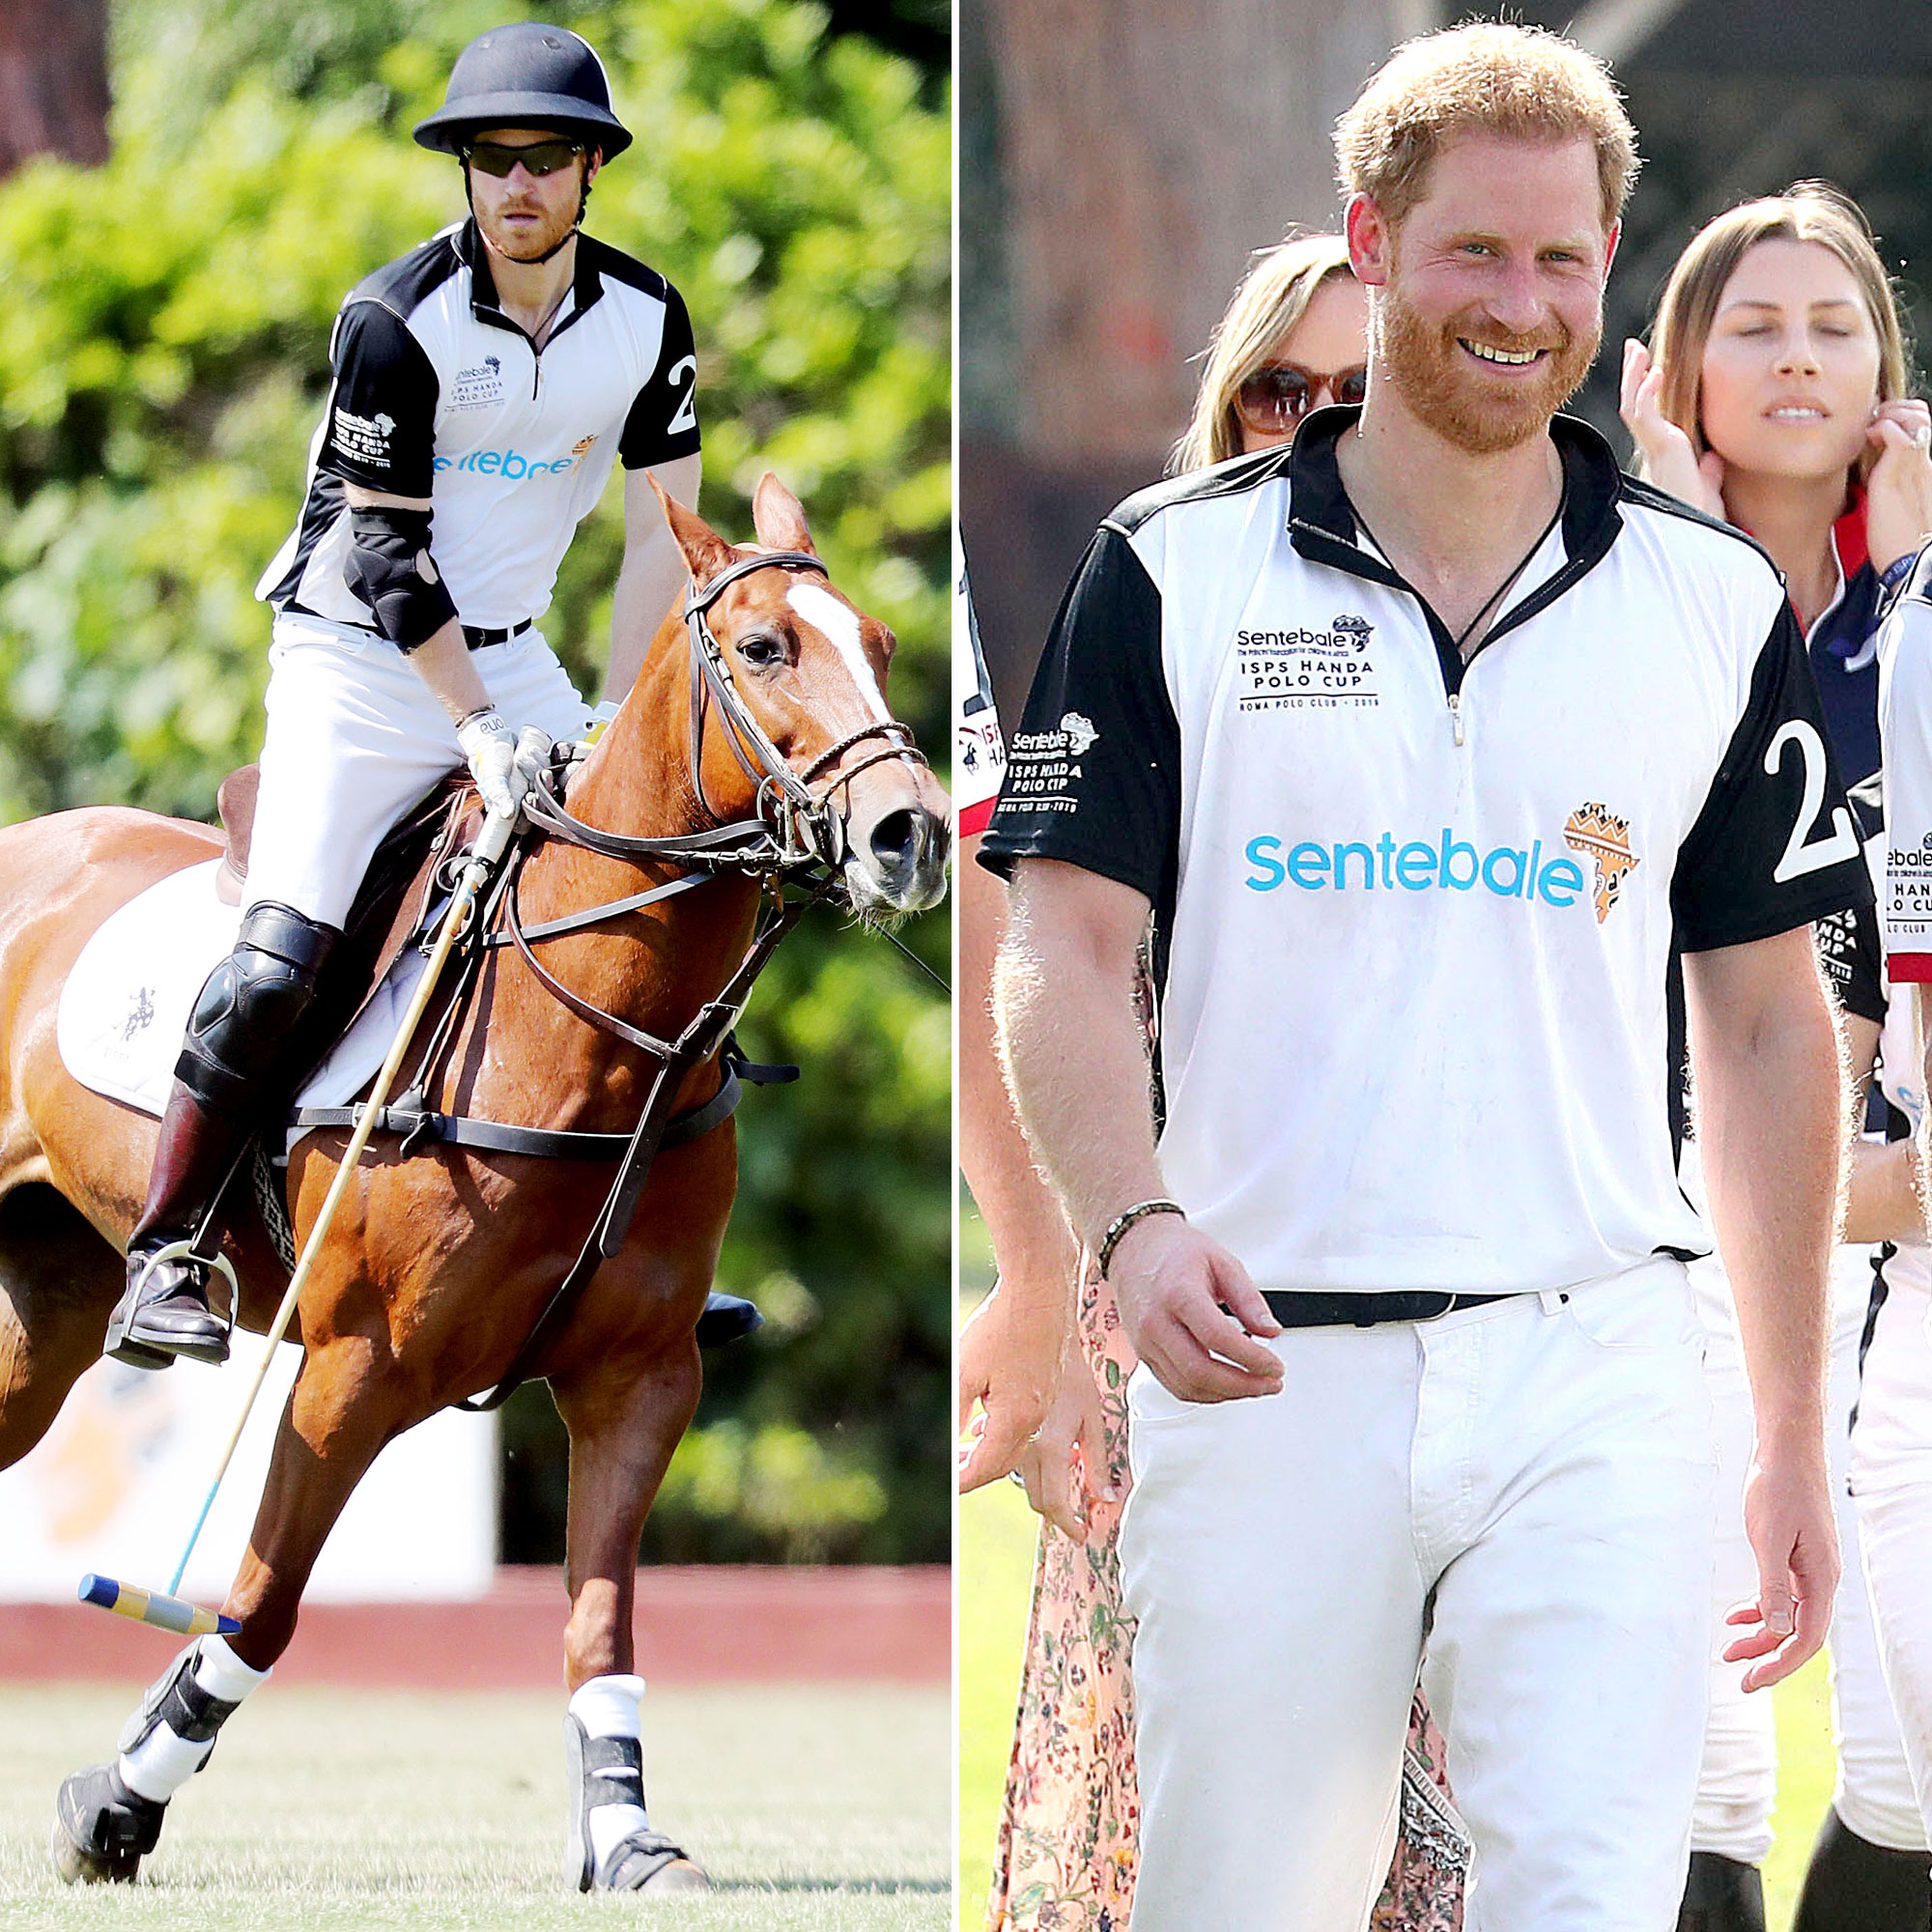 Prince Harry Spends First Night Away From Meghan Archie - Polo calls! Prince Harry spent his first night without Duchess Meghan since the couple welcomed baby Archie earlier this month.